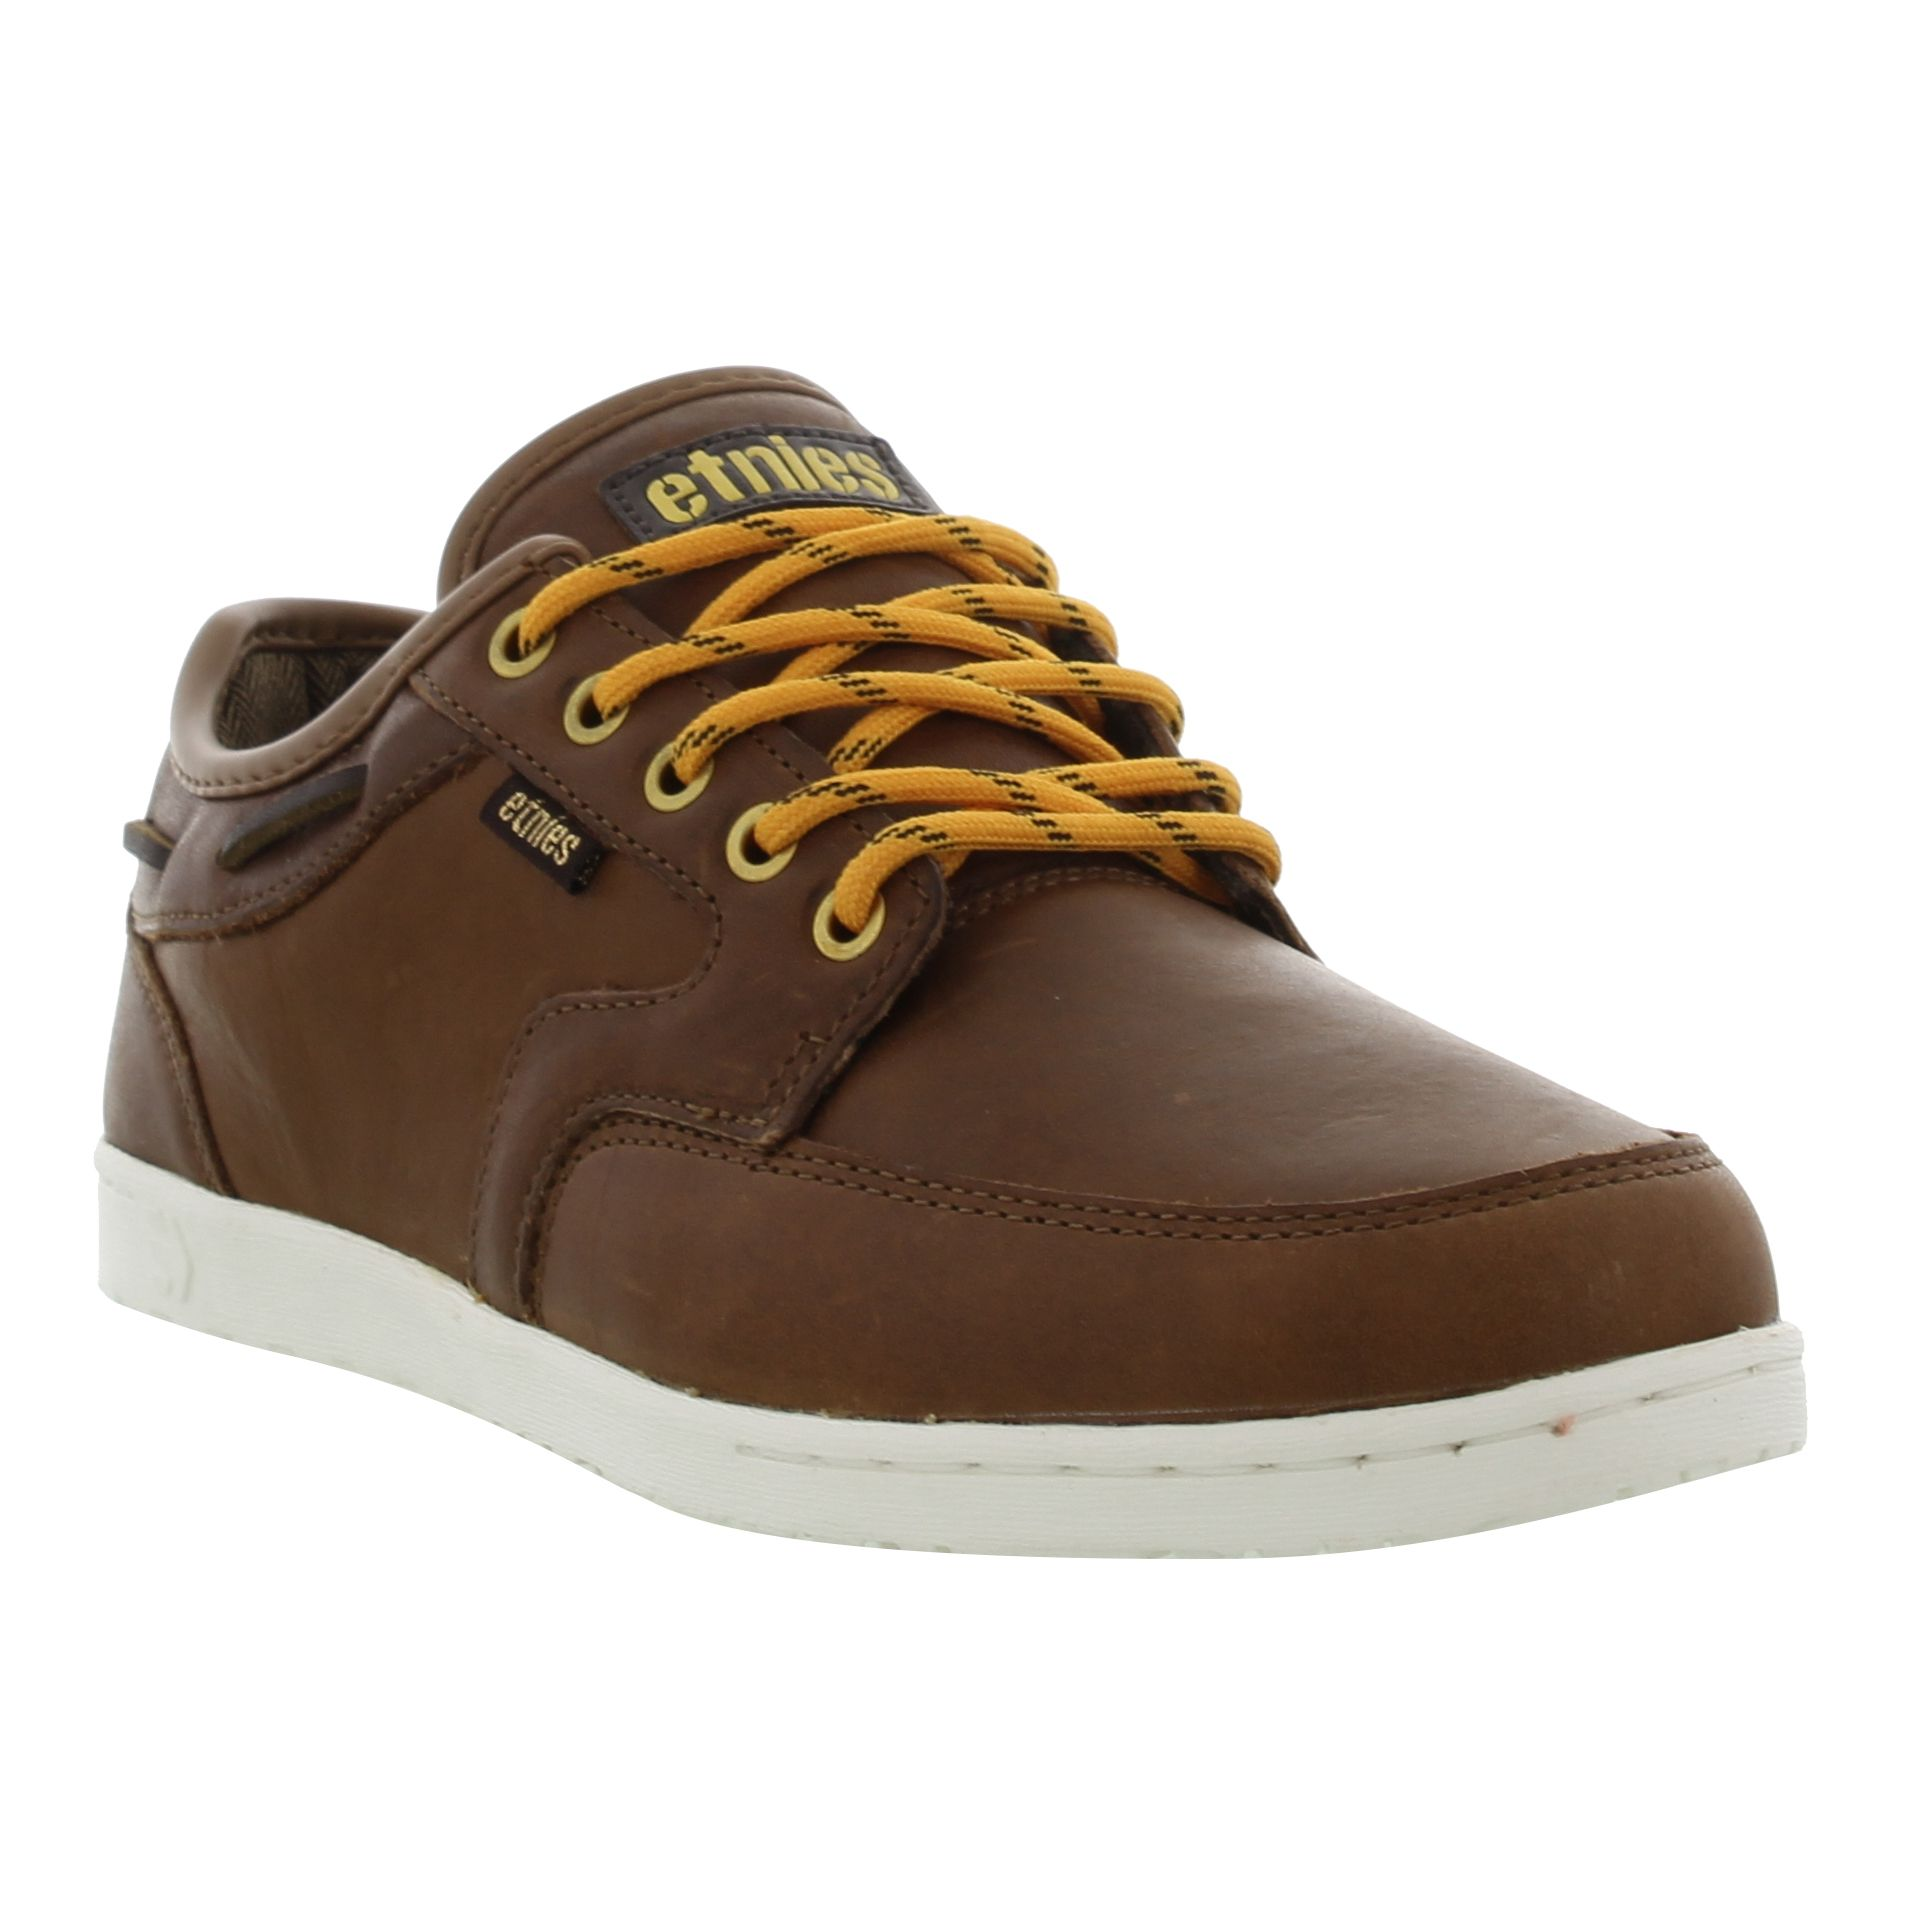 Dory Smu Mens Brown Leather Shoes Trainers